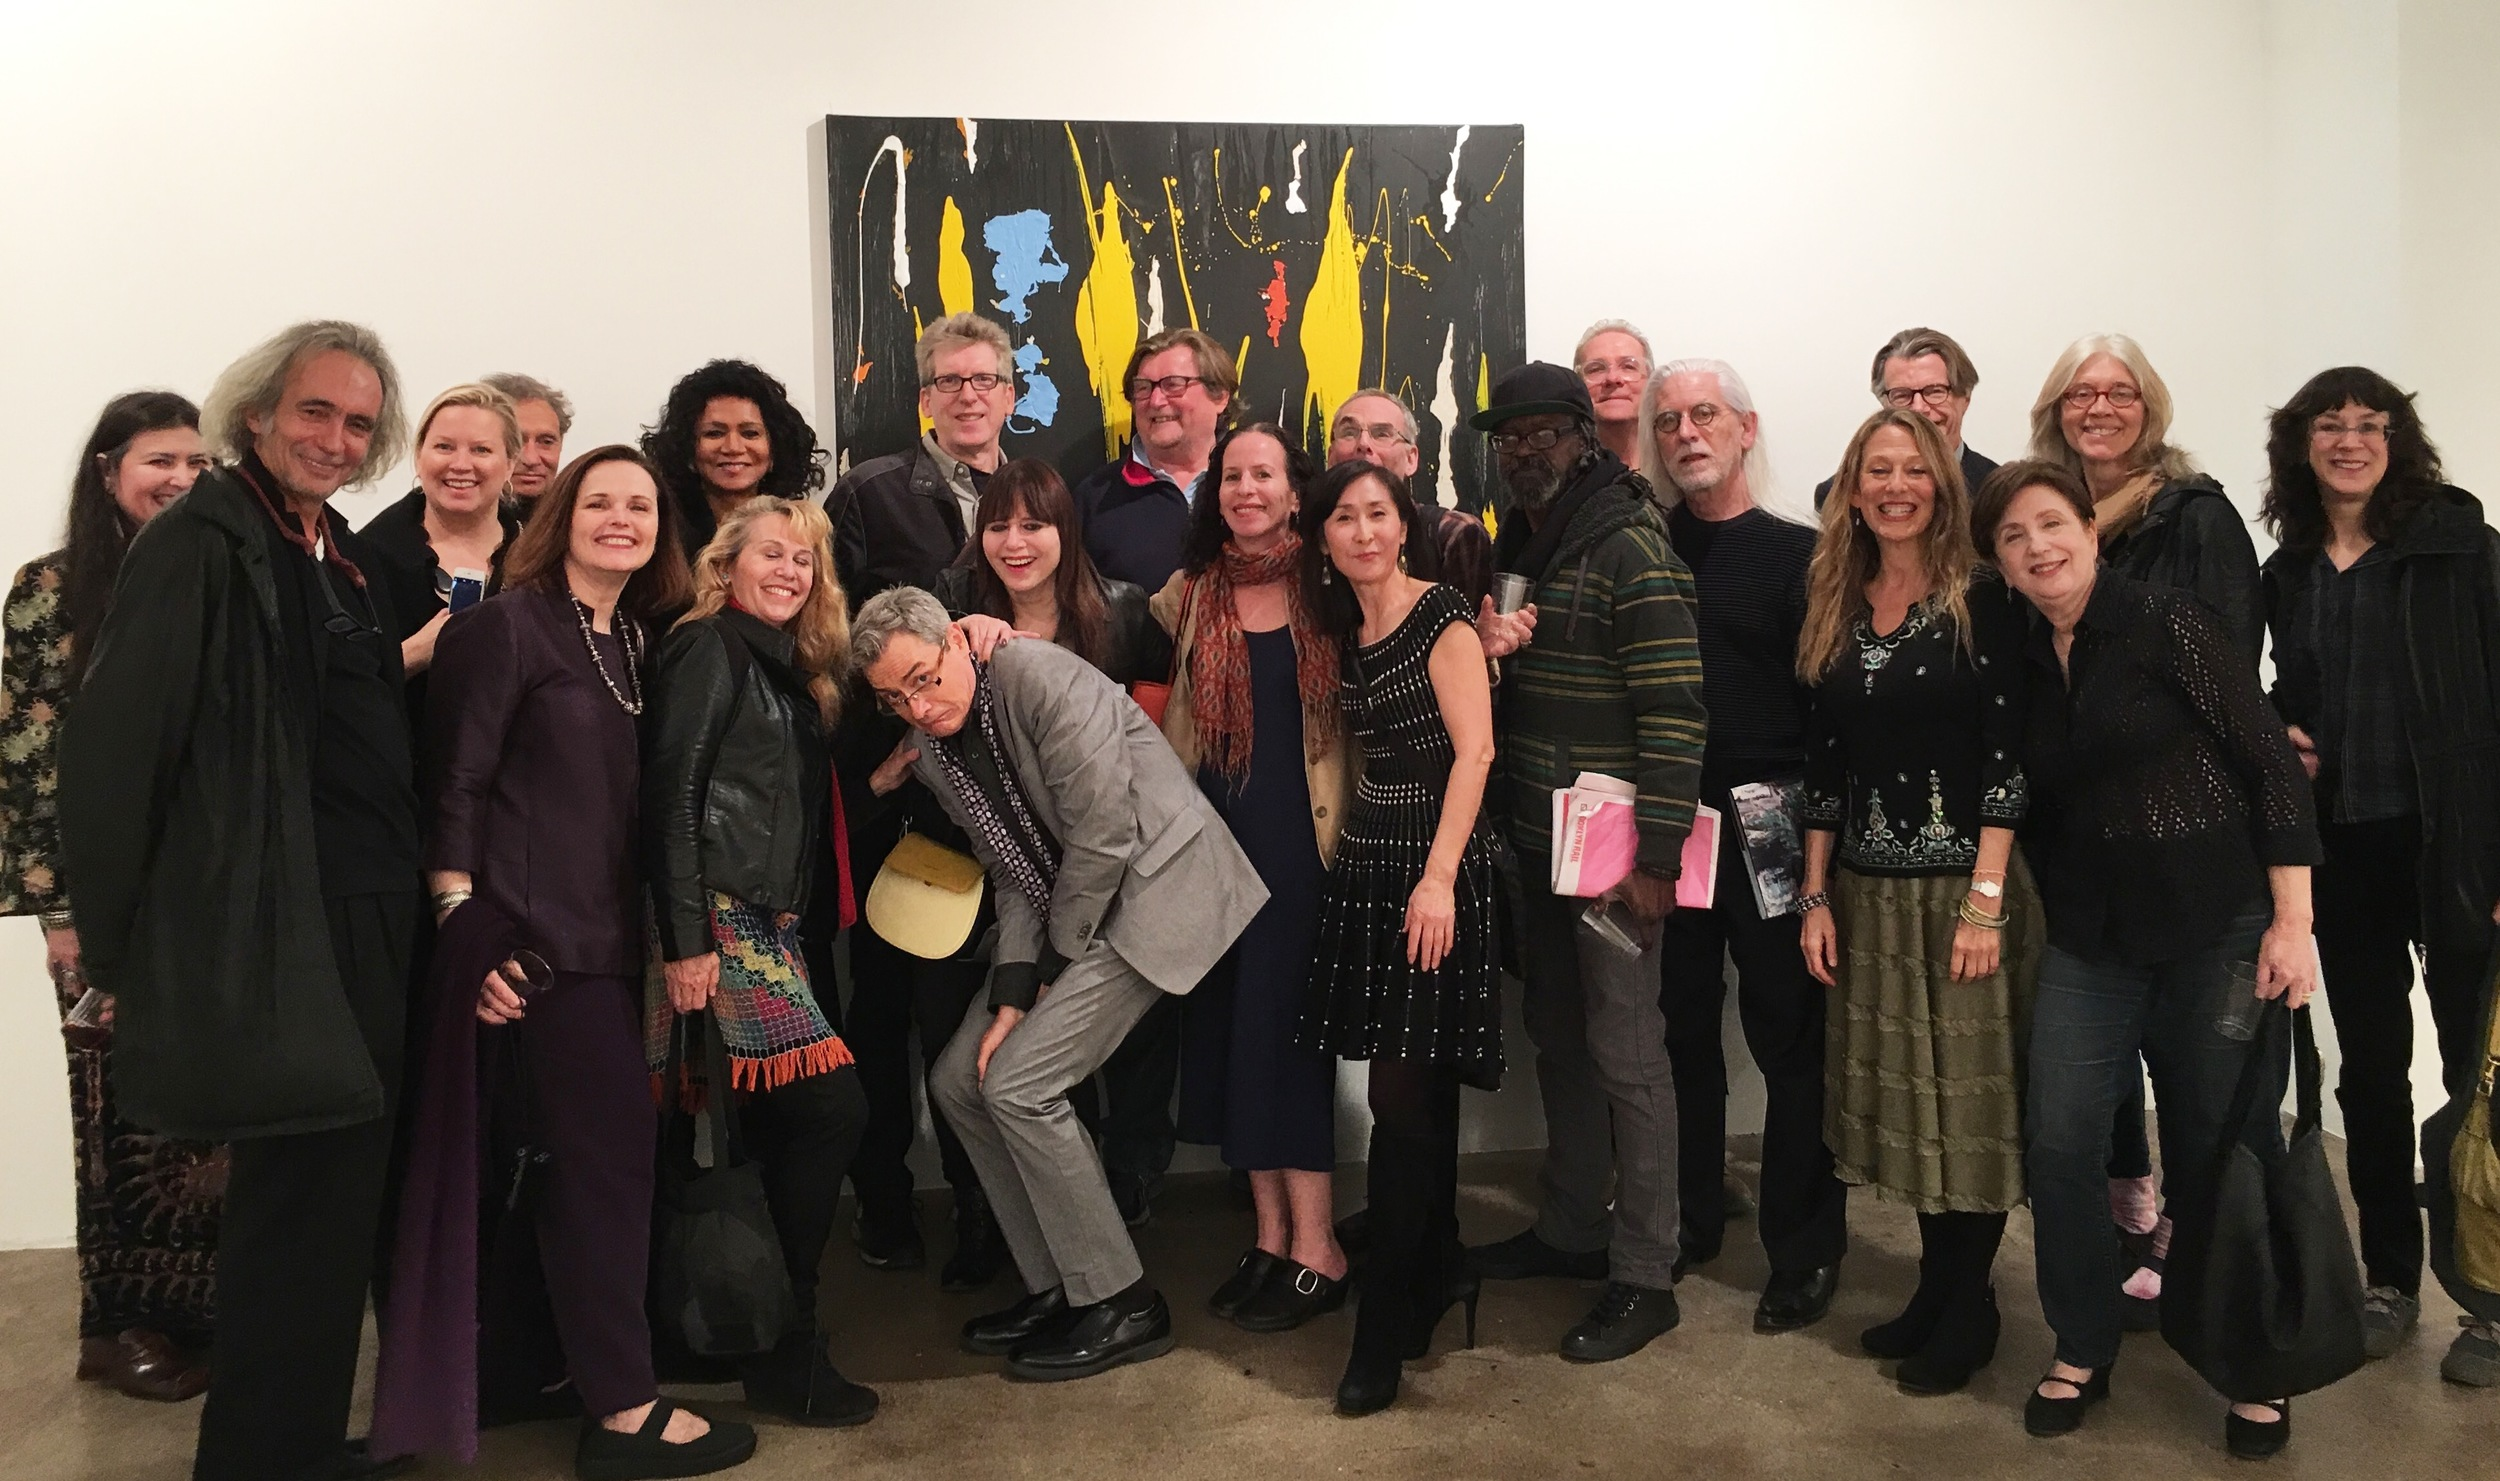 My artist peers who came by to celebrate...